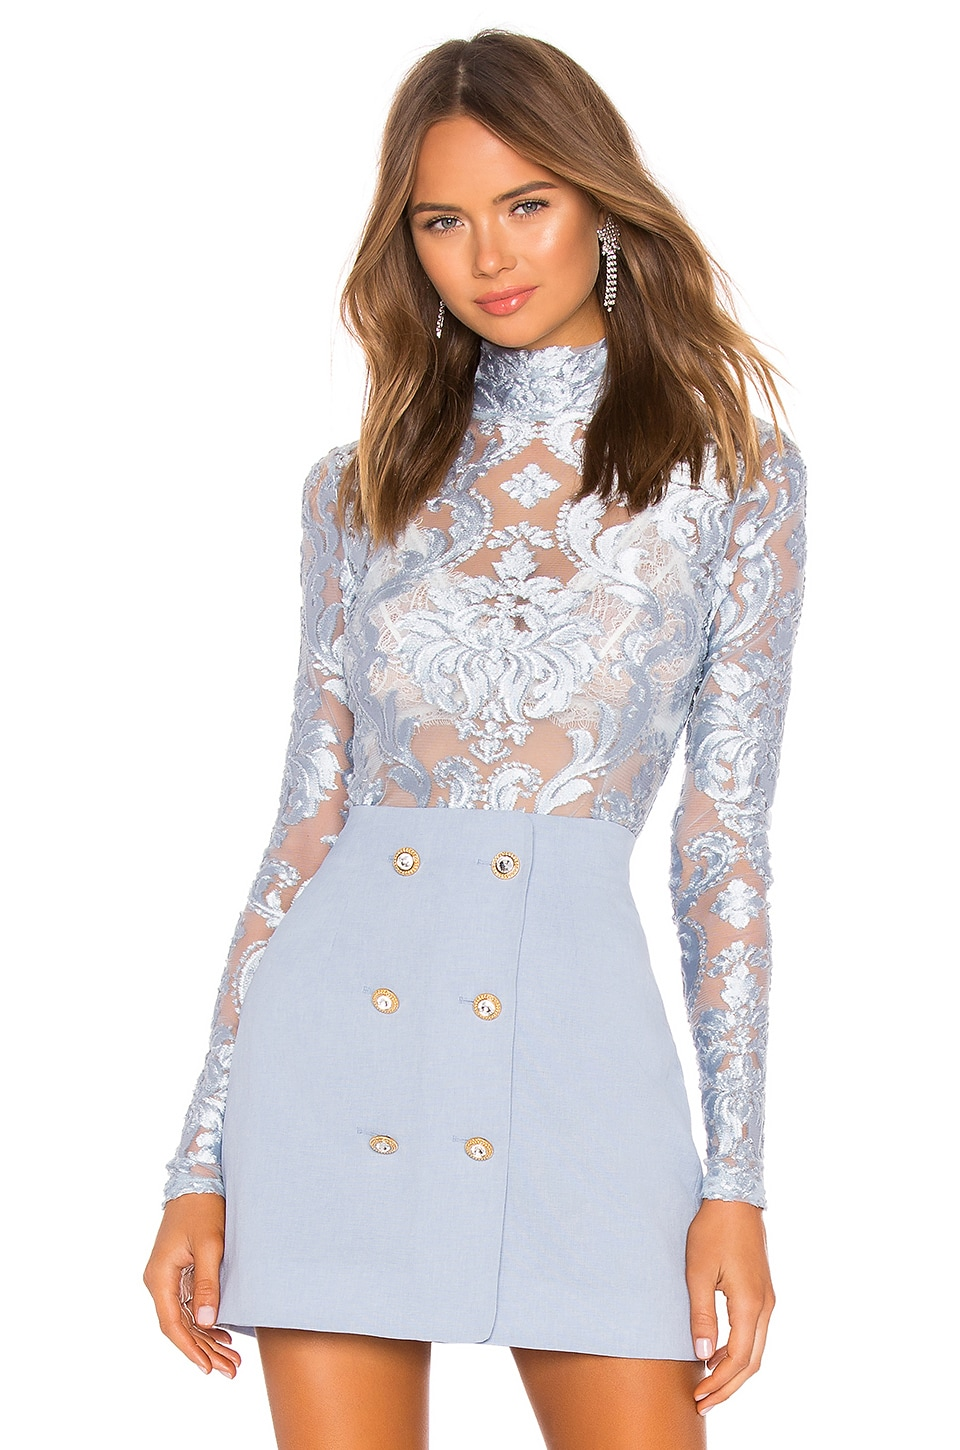 Alice Mccall ENTITLED TOP